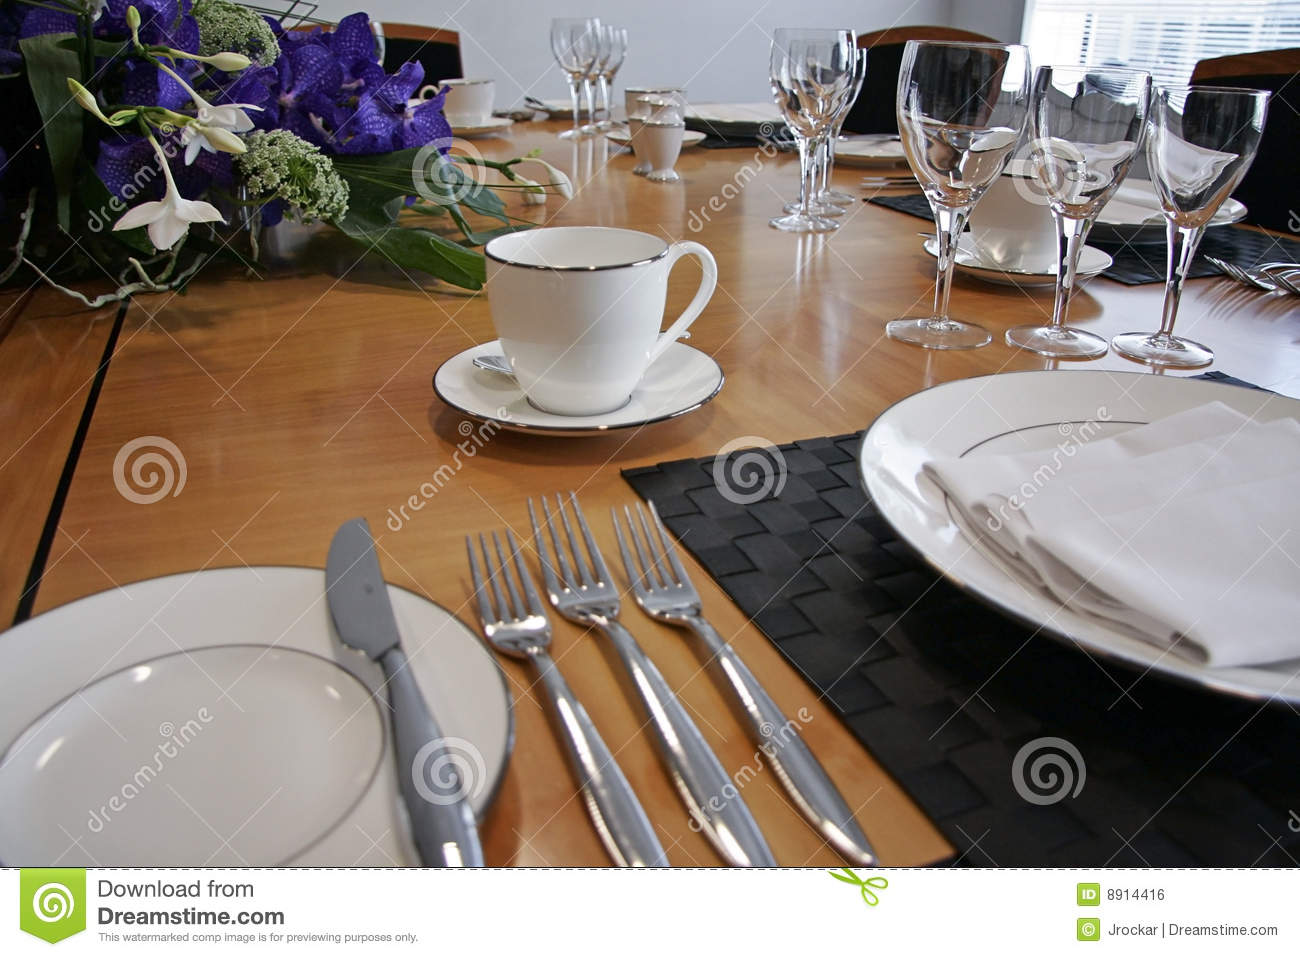 Restaurant Table Setup With Cut Flowers Royalty Free Stock